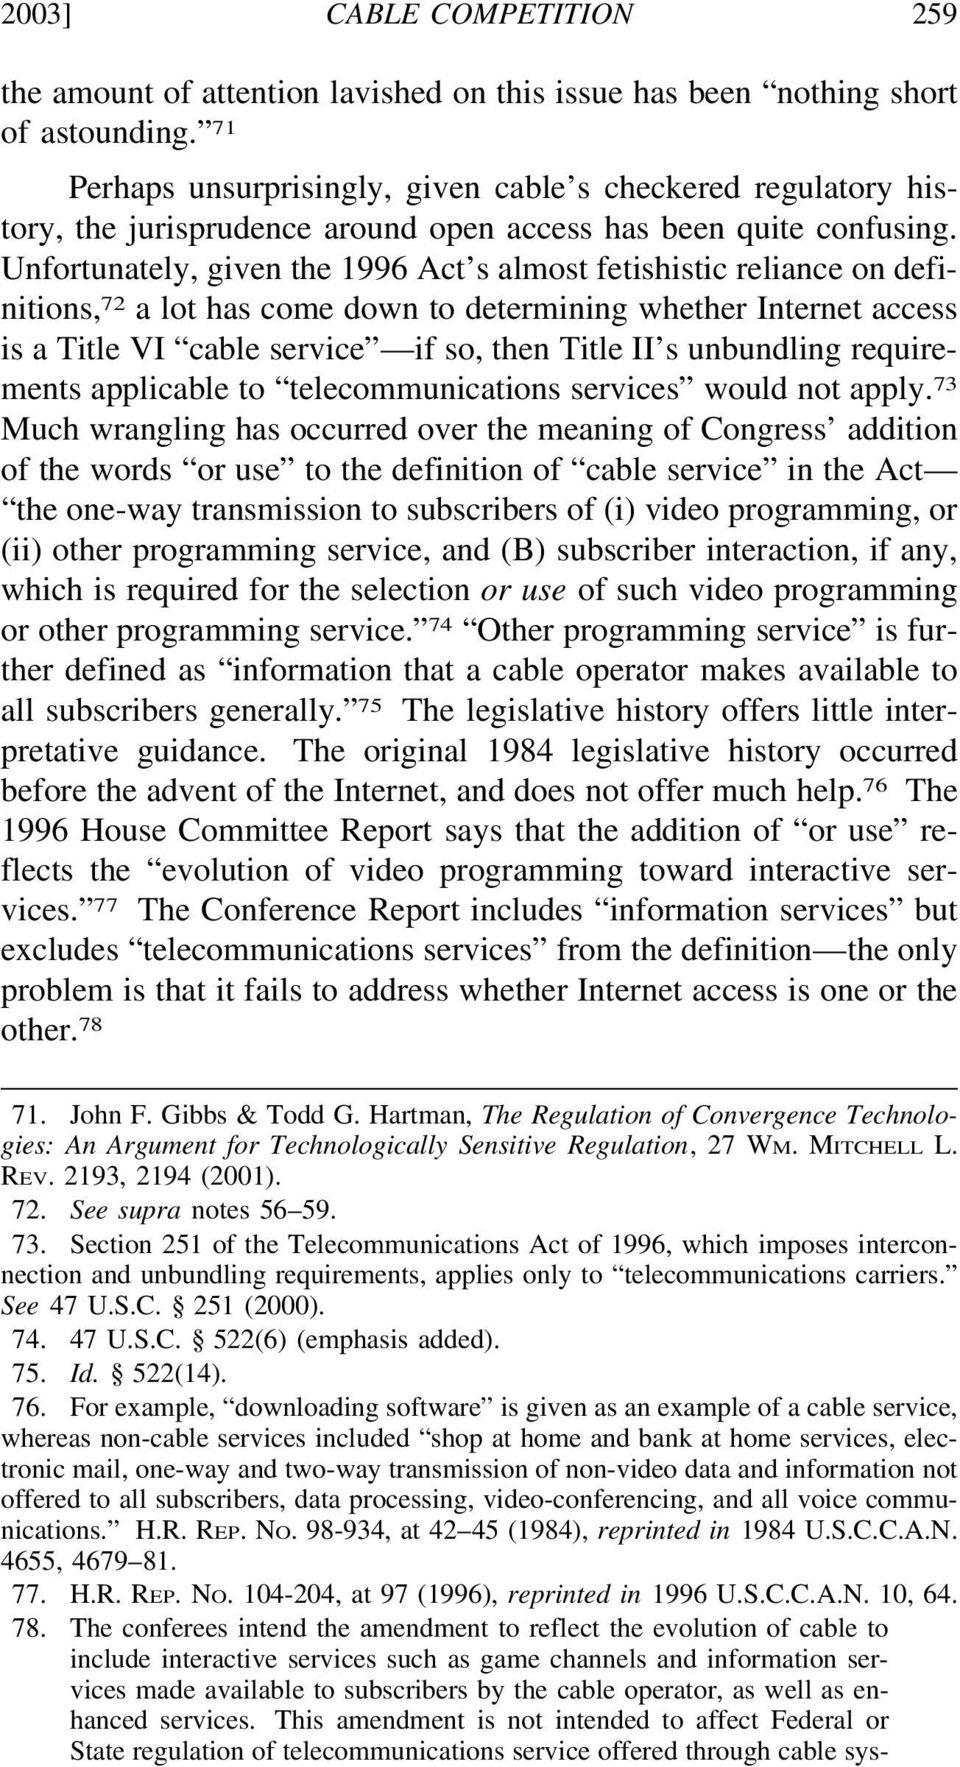 Unfortunately, given the 1996 Act s almost fetishistic reliance on definitions, 72 a lot has come down to determining whether Internet access is a Title VI cable service if so, then Title II s